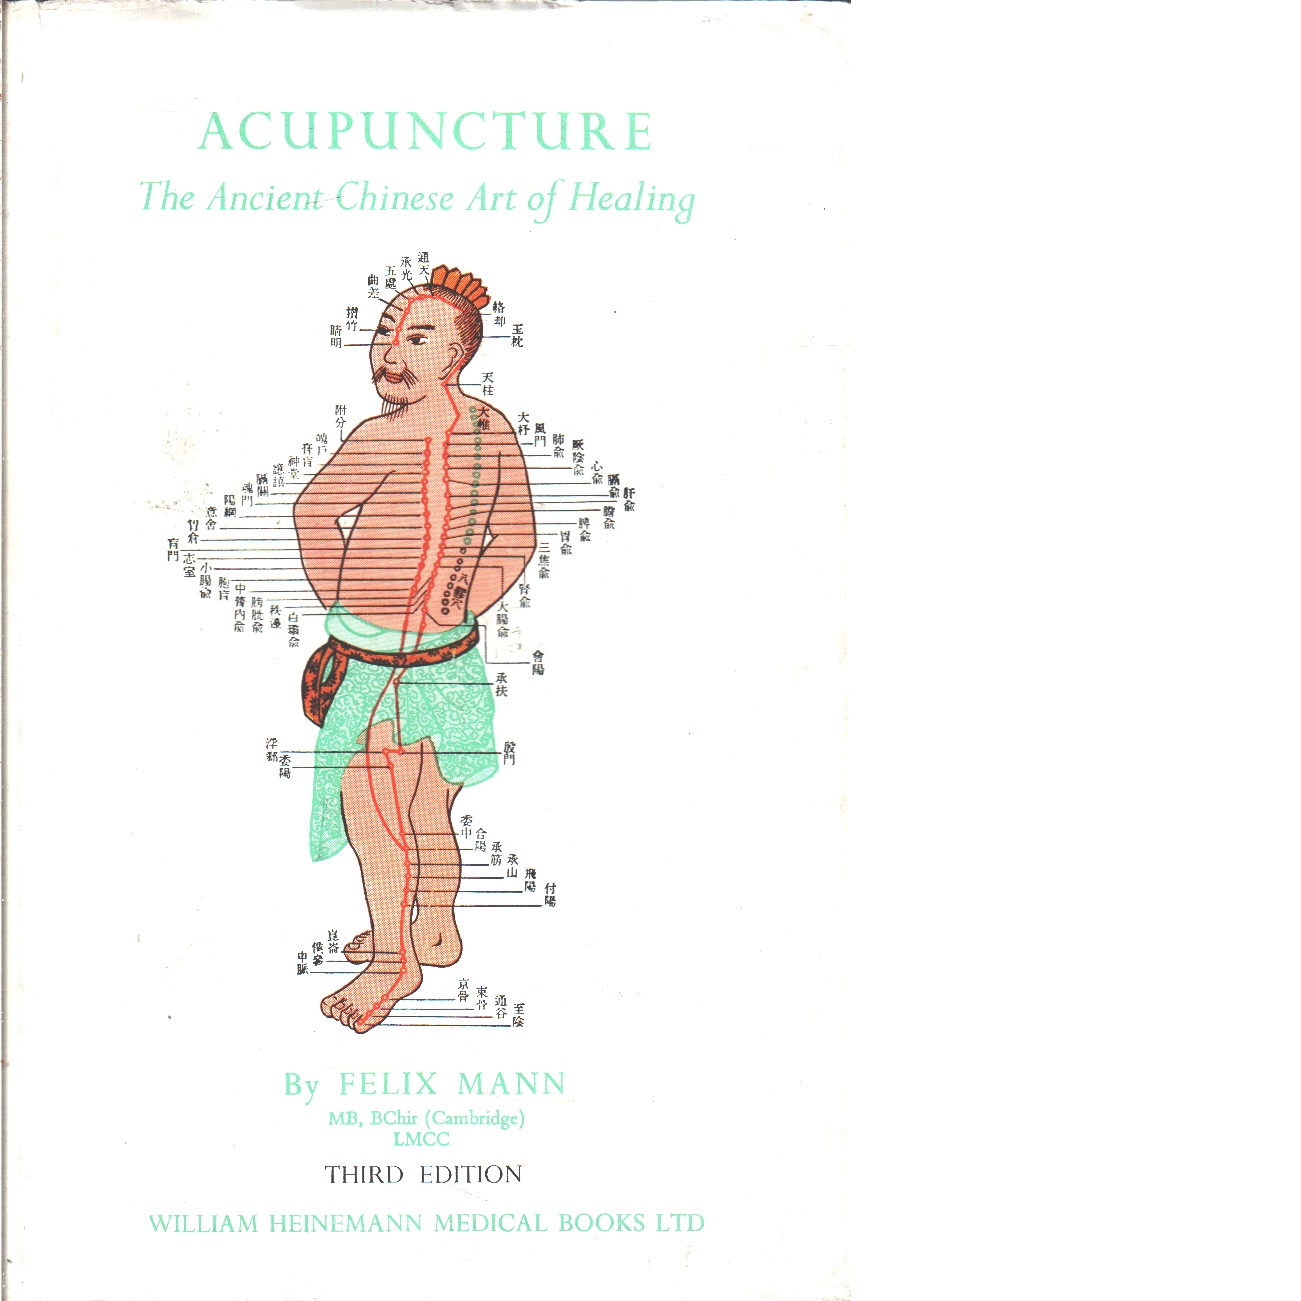 Acupuncture: The Ancient Chinese Art of Healing  -  Mann, Felix